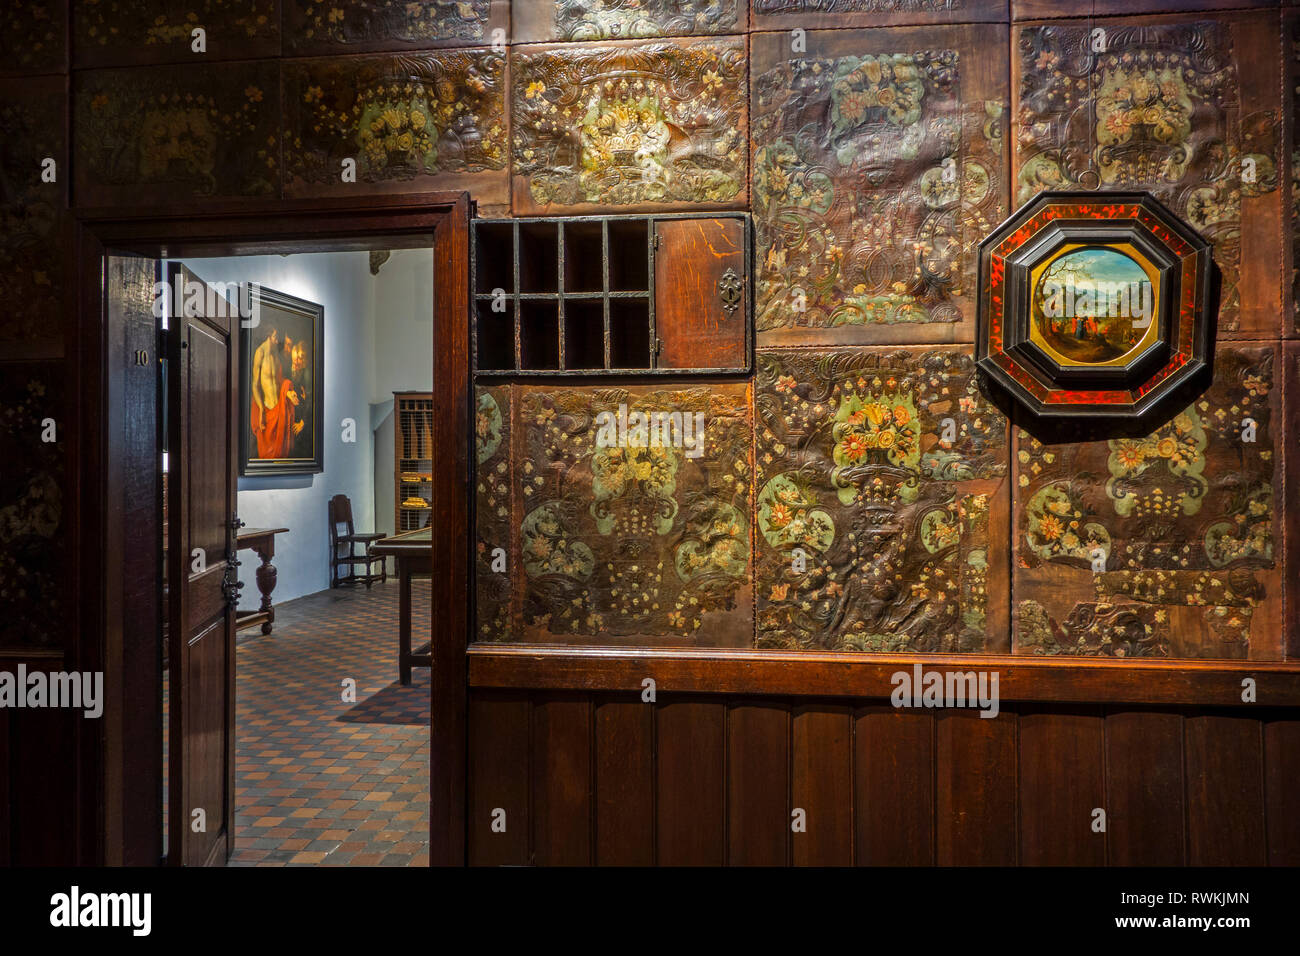 Gold leather hangings in office at the Plantin-Moretus Museum / Plantin-Moretusmuseum about 16th century printers, Antwerp, Belgium - Stock Image